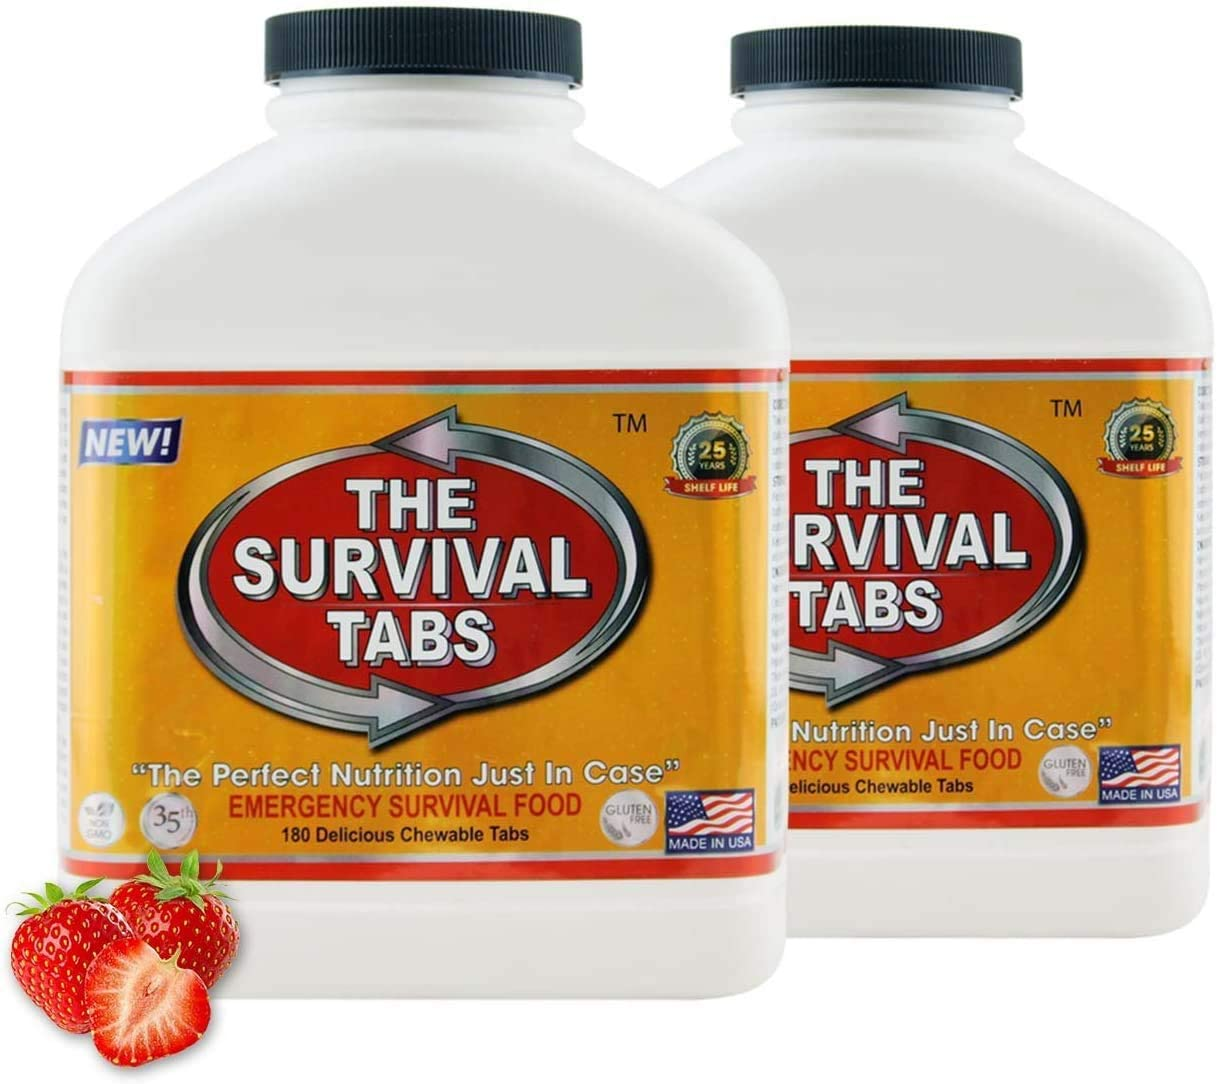 Survival Tabs 30-day Food Supply Emergency Food Ration 360 tabs Survival MREs for Disaster Preparedness for Earthquake Flood Tsunami Gluten Free and Non-GMO 25 Years Shelf Life - Strawberry Flavor